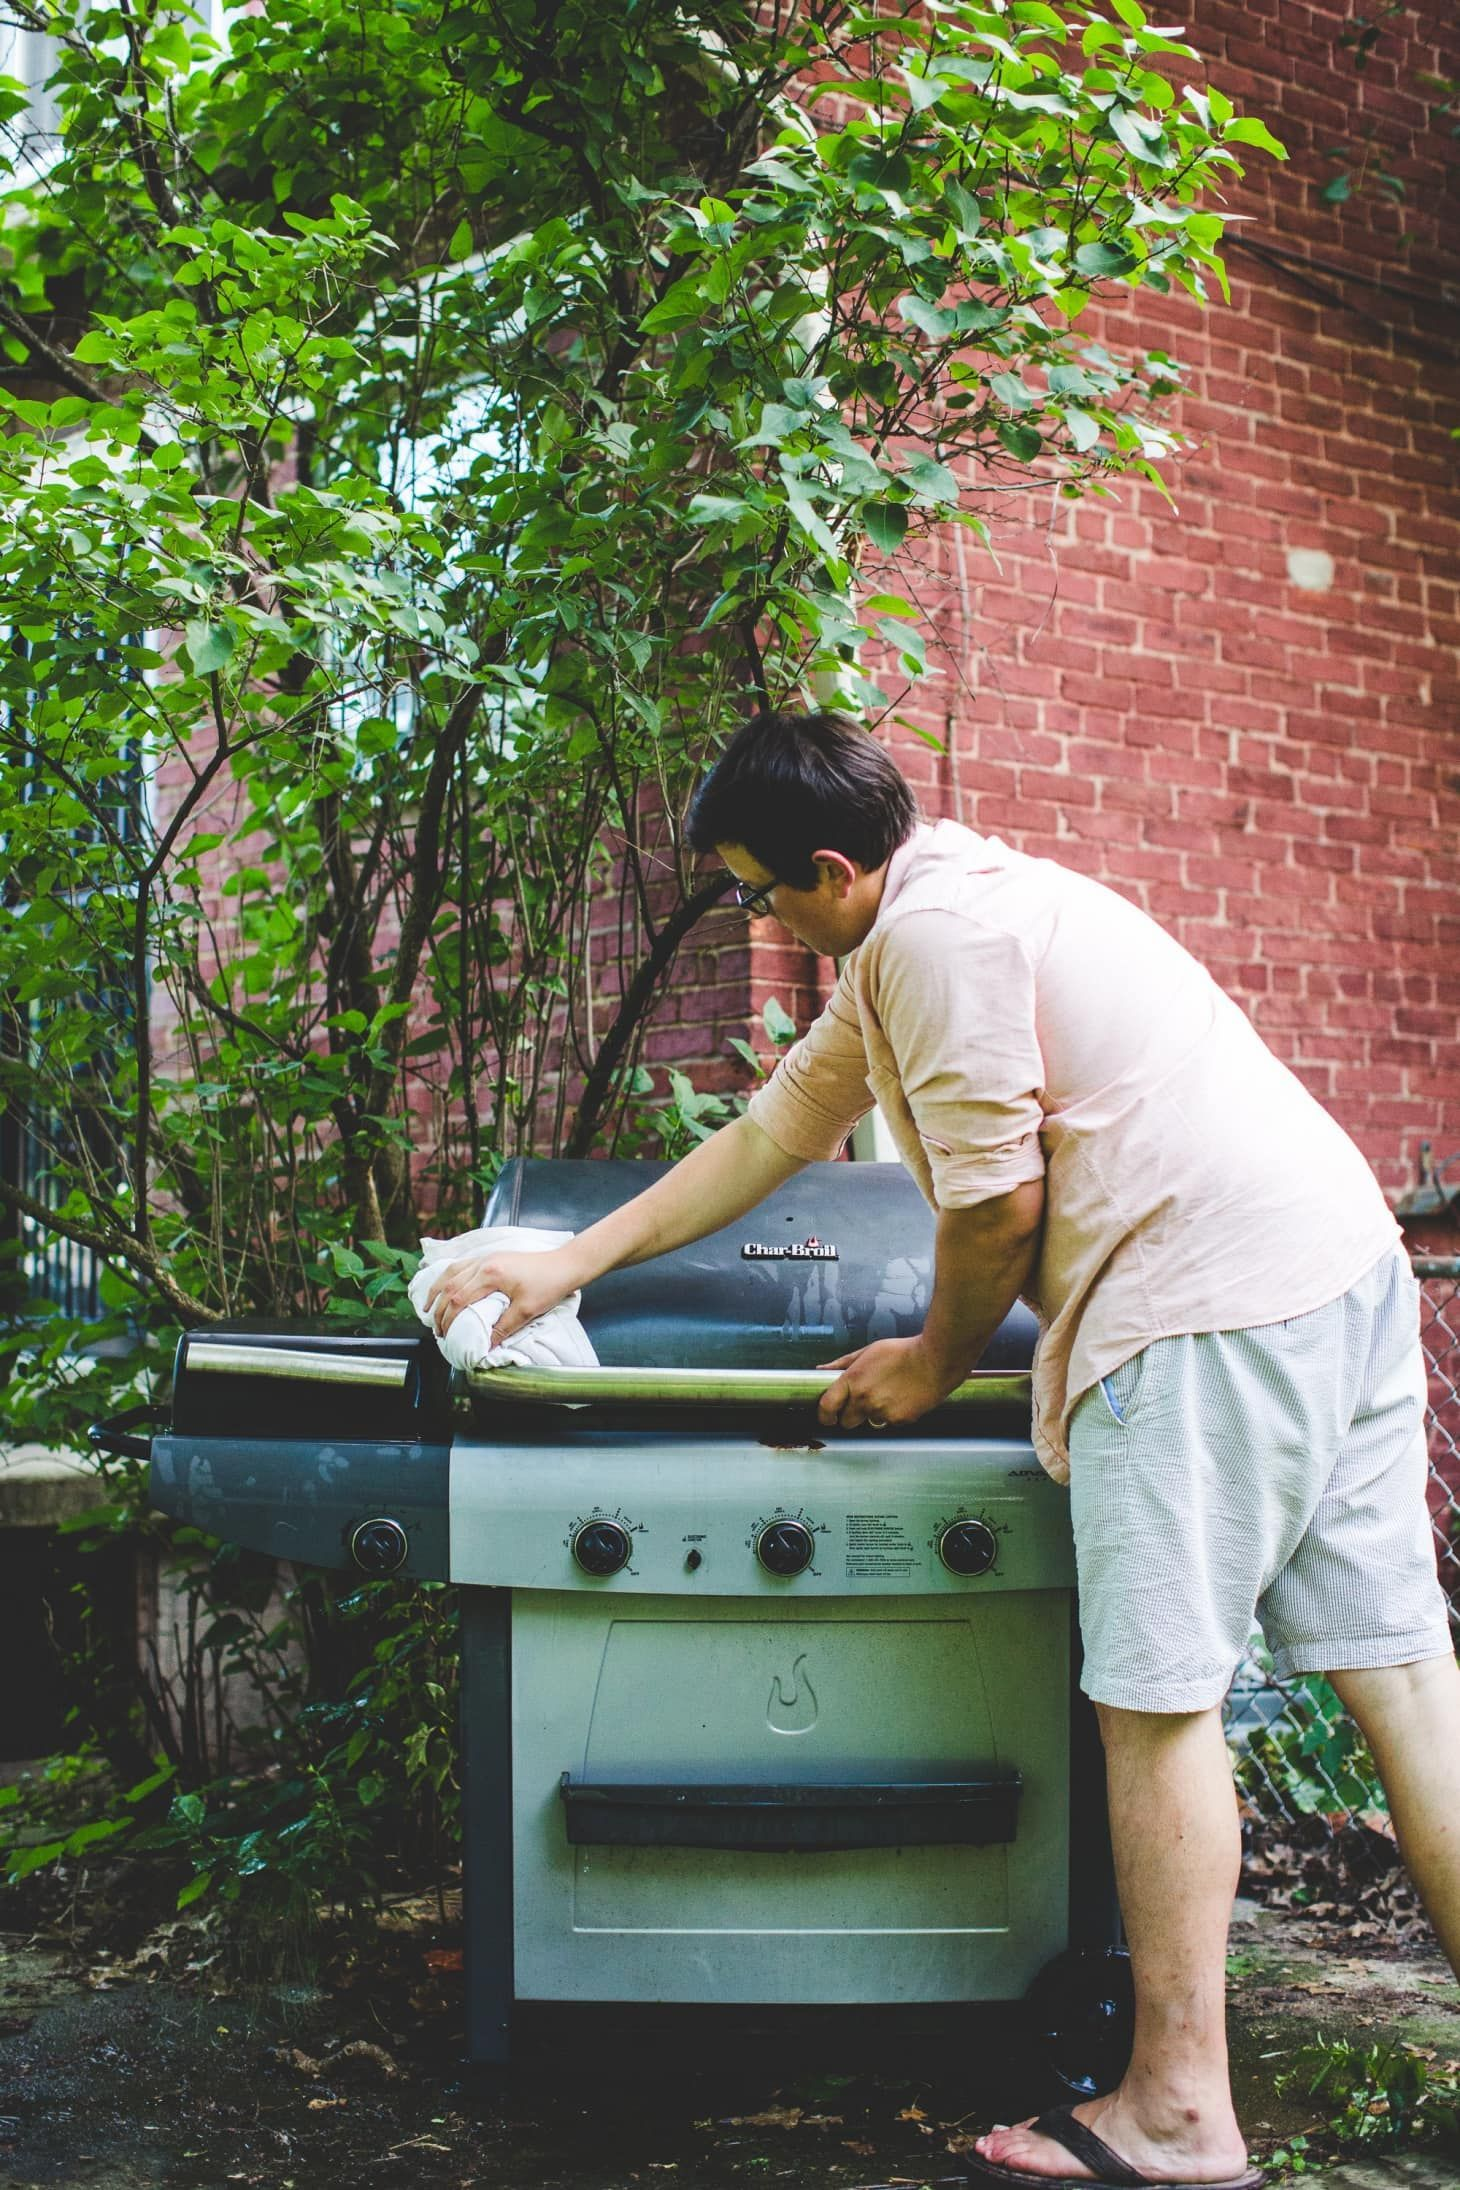 How To Clean Your Gas Grill Gas Grill Clean Grill Gas Bbq